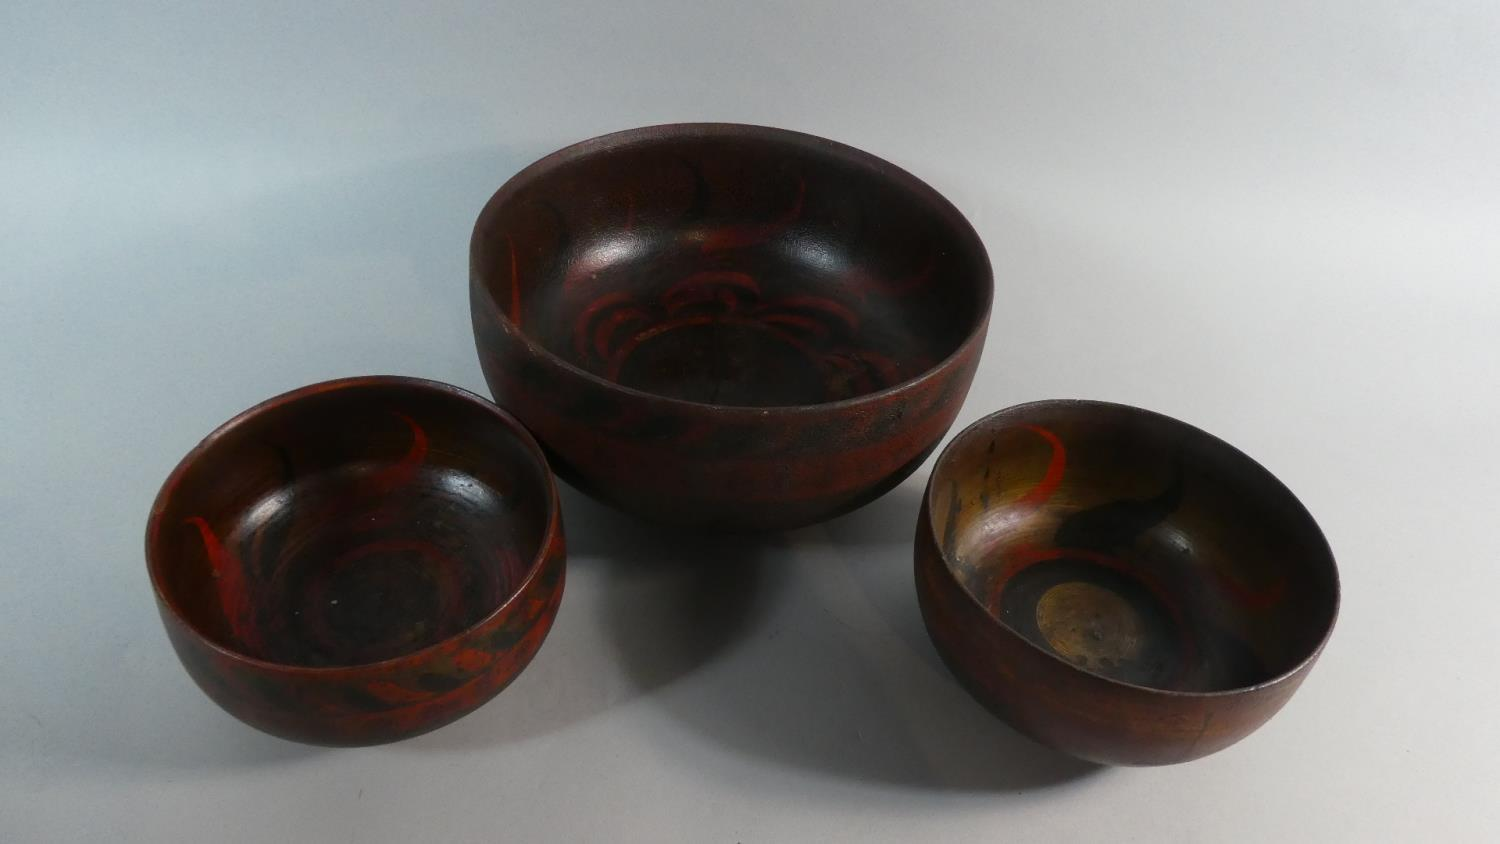 A Collection of Three Early 20th Century Indonesian Wooden Bowls with Original Polychrome Painted - Image 2 of 5